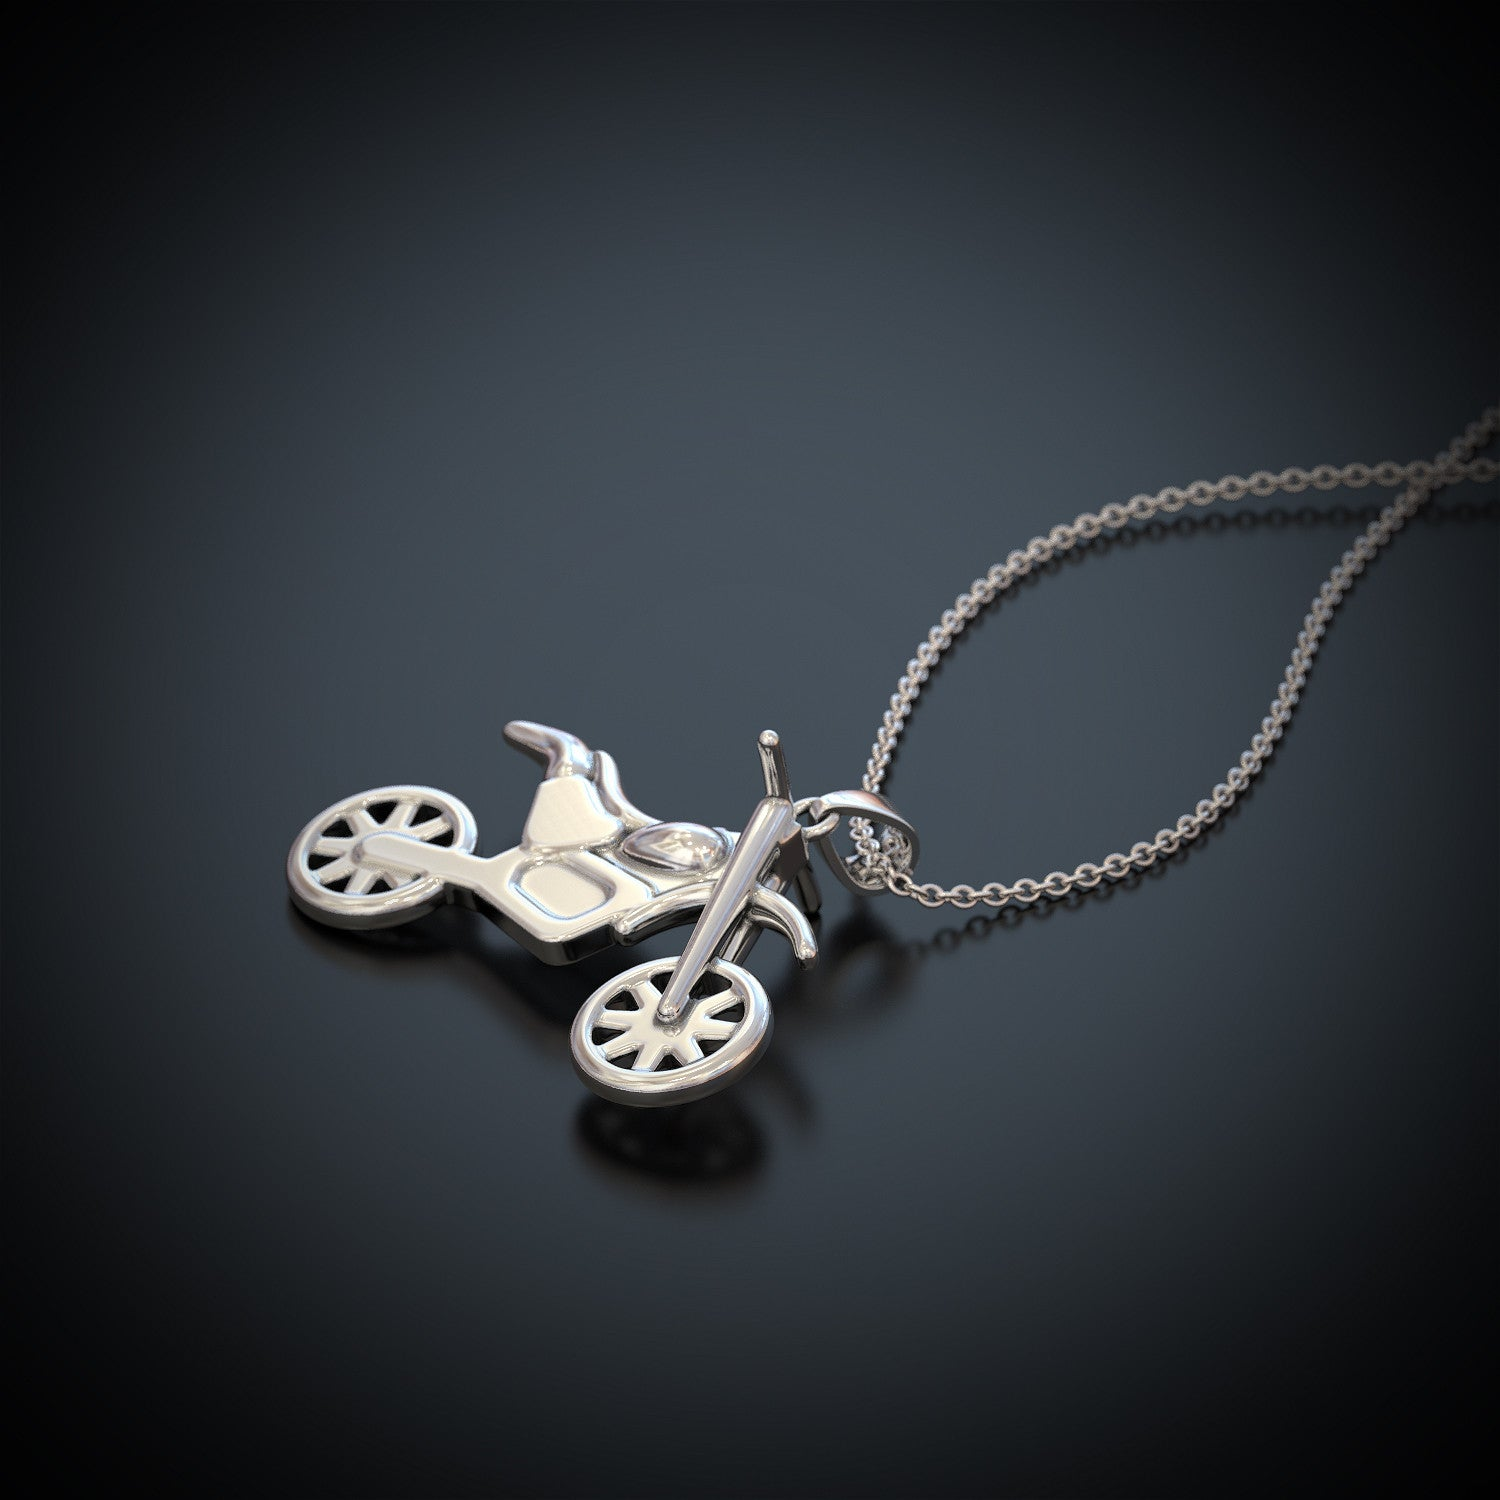 Dirt Bike Necklace - LIMITED EDITION